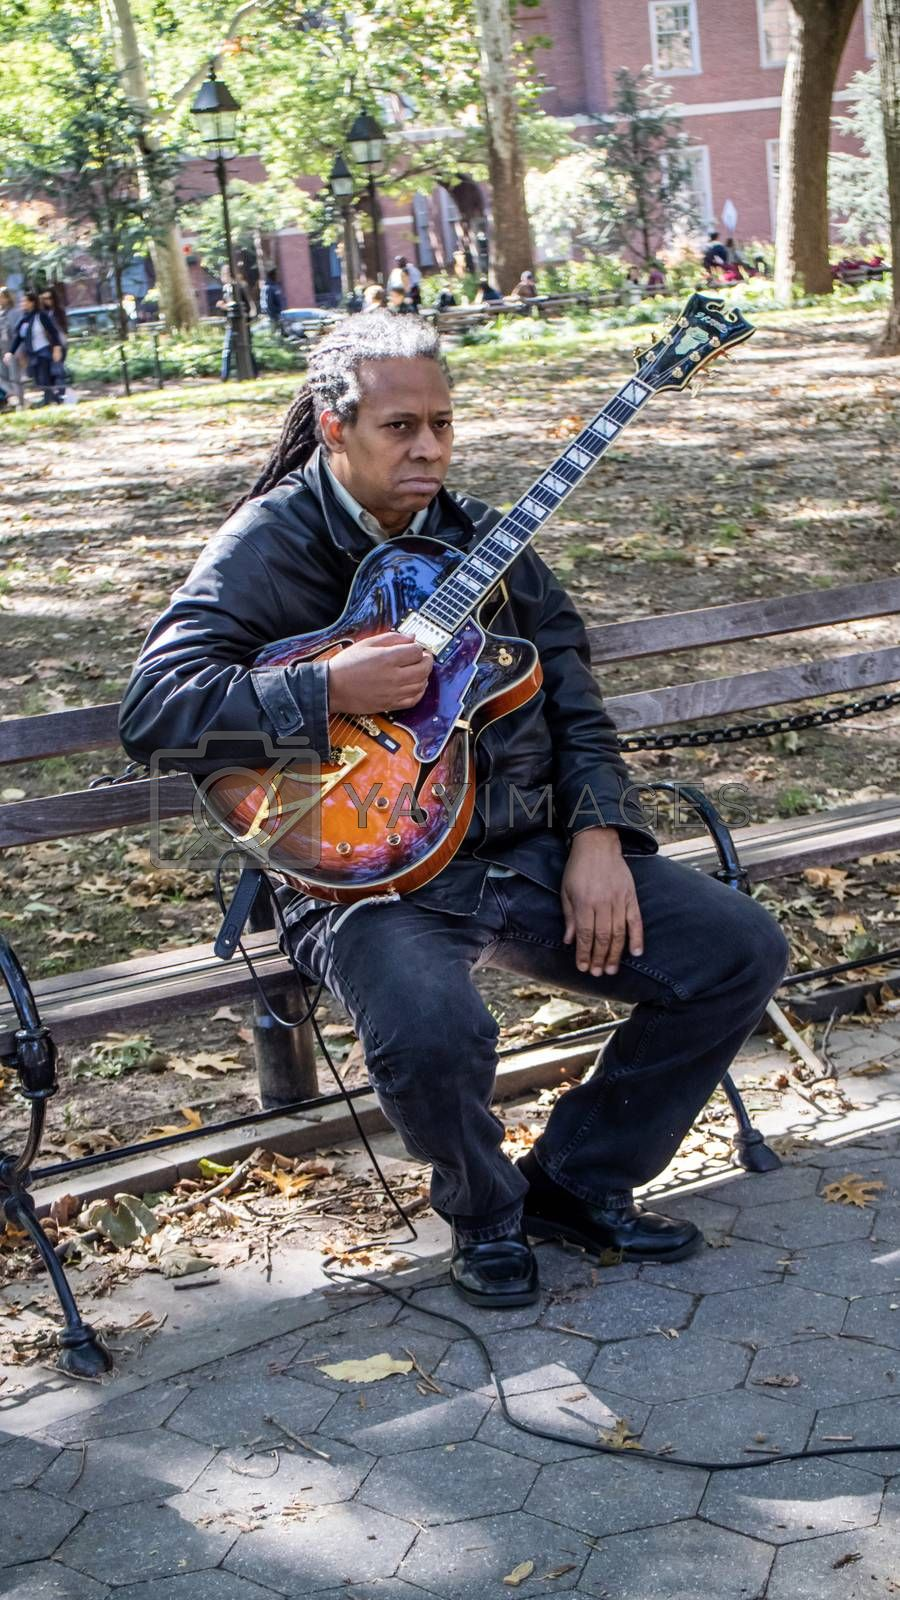 NEW YORK, USA, October 10, 2015: An unidentified lonely guitar player perform his songs in Washington Square Garden in Manhattan, New York.